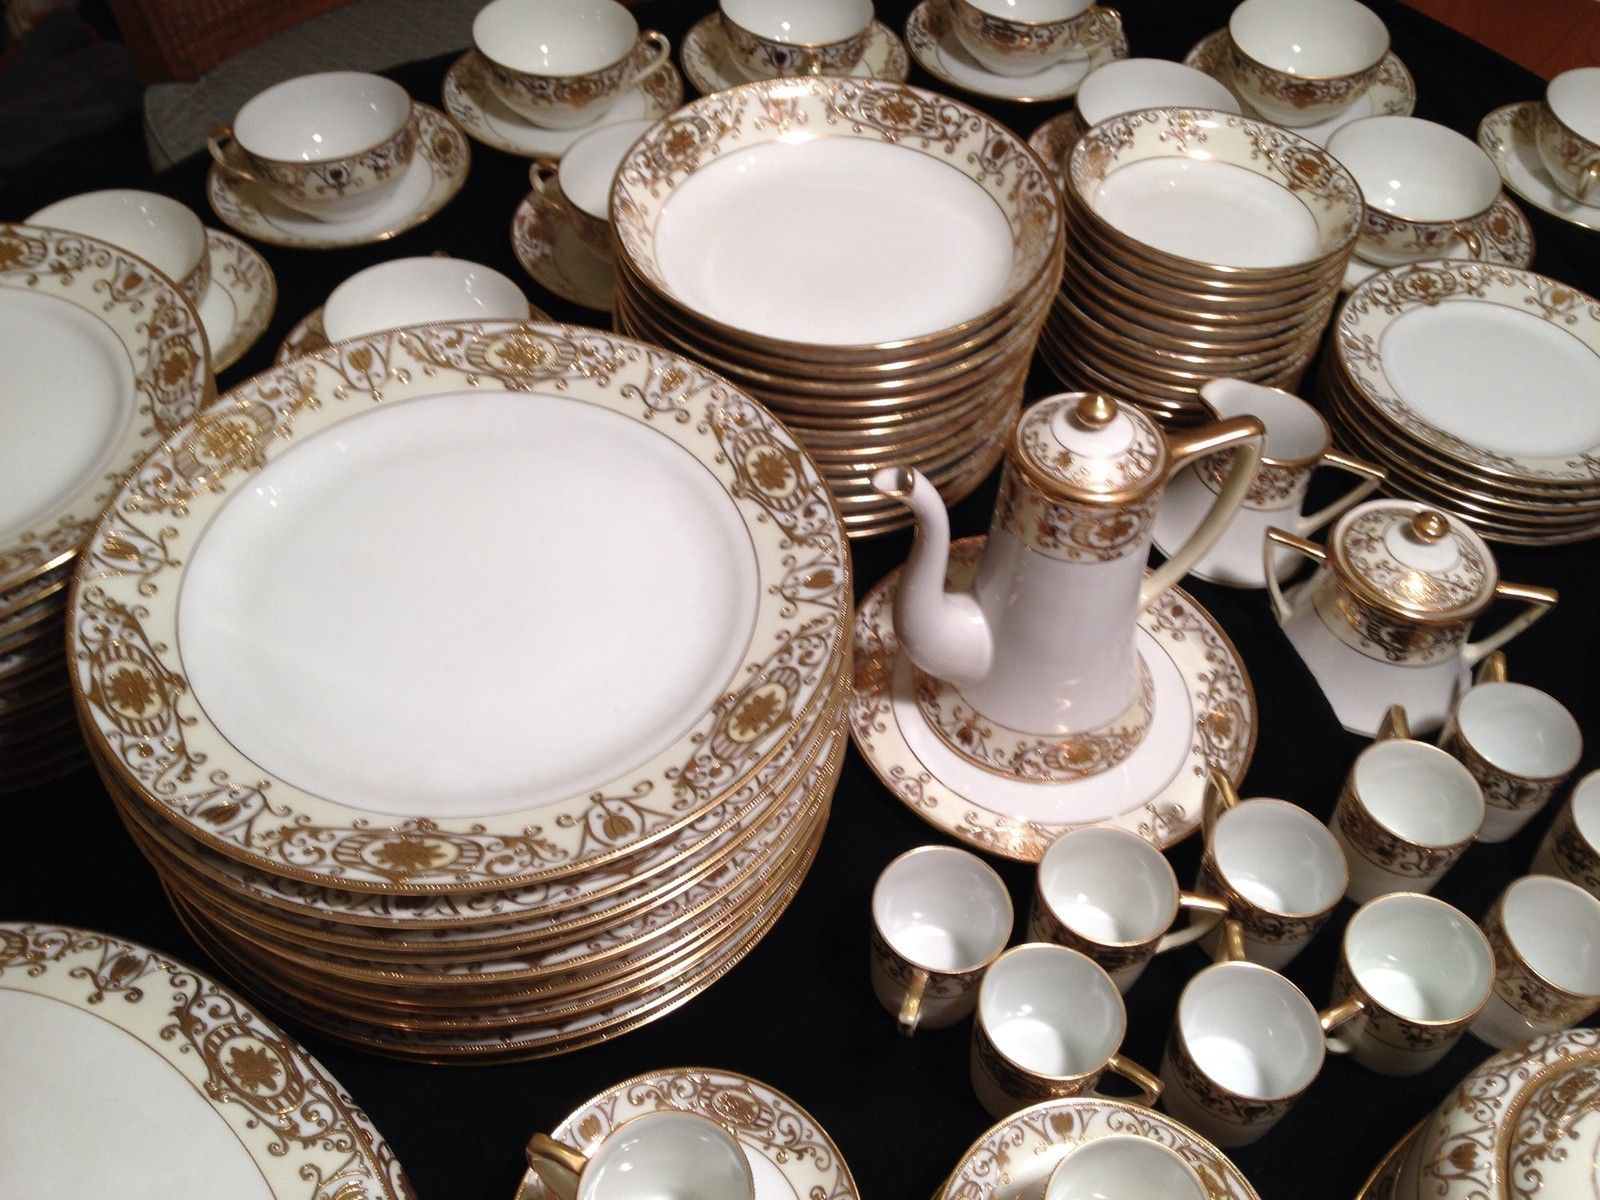 antique noritake m gold christmas ball china set 138 piece unused 1920s 43061 ebay - Christmas China Sets